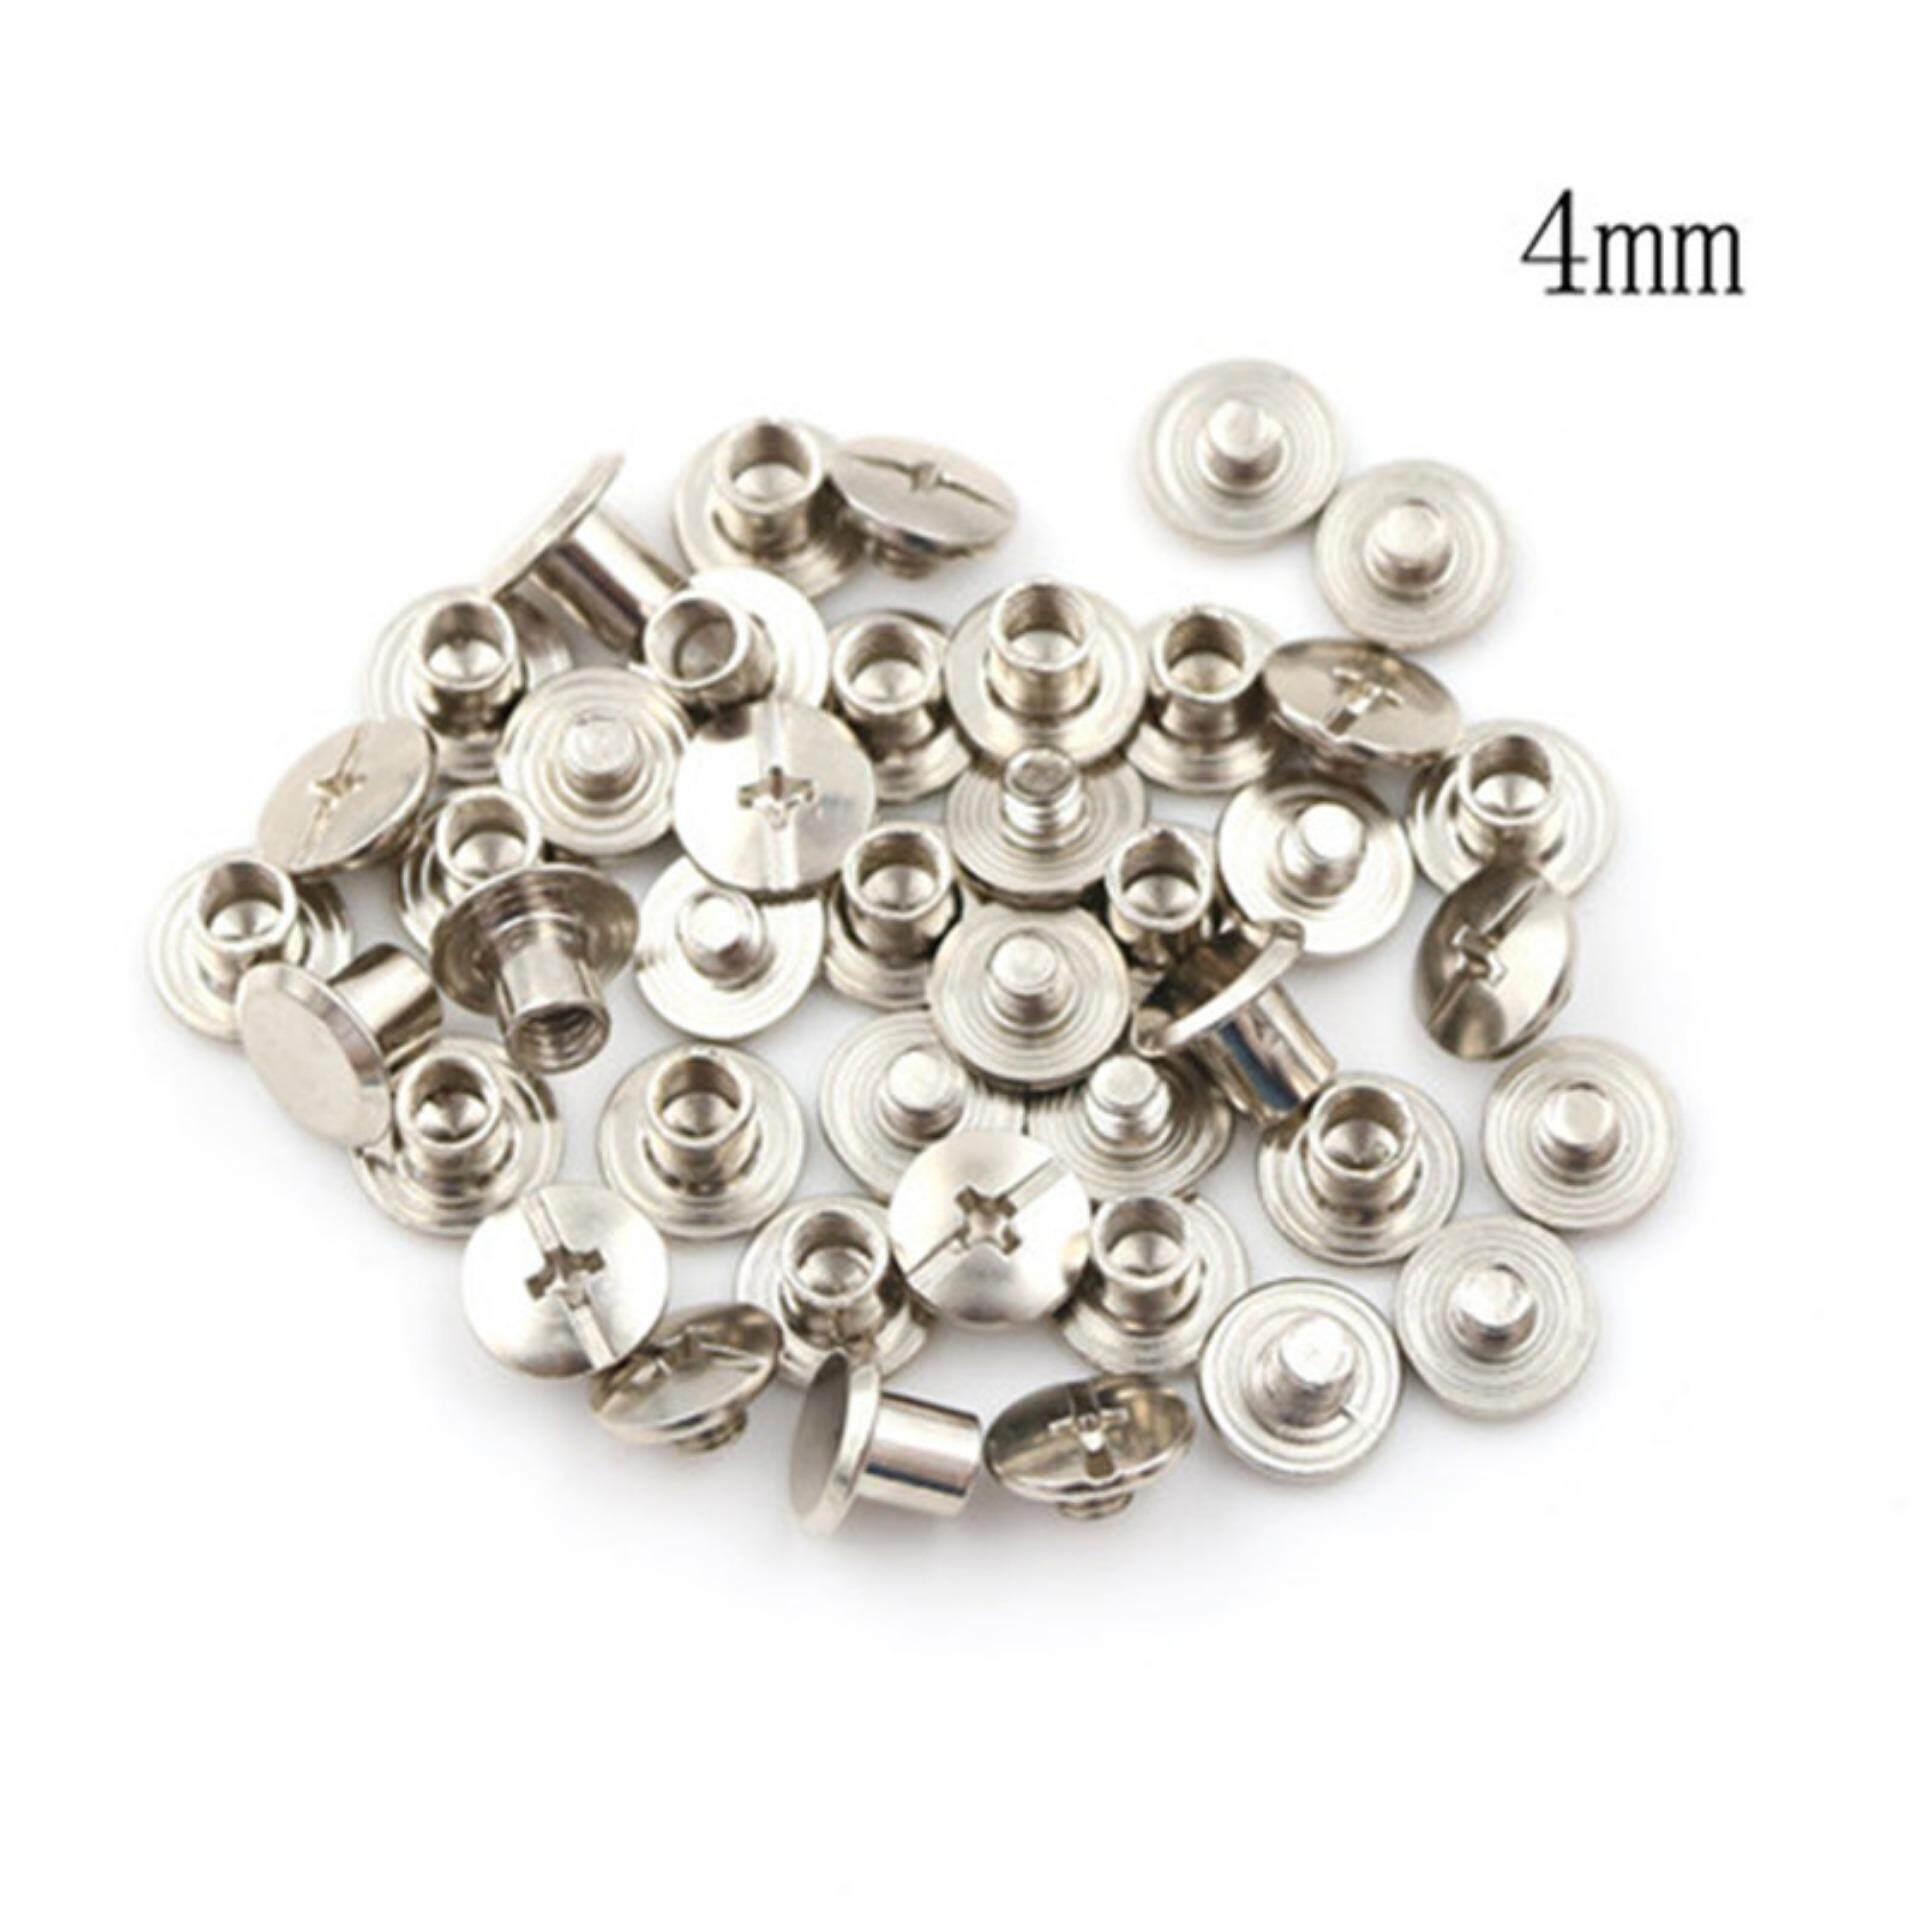 Mecola 20PCS Nickel Binding Chicago Screws Nail Rivets Album Craft 5x6mm Useful  4mm